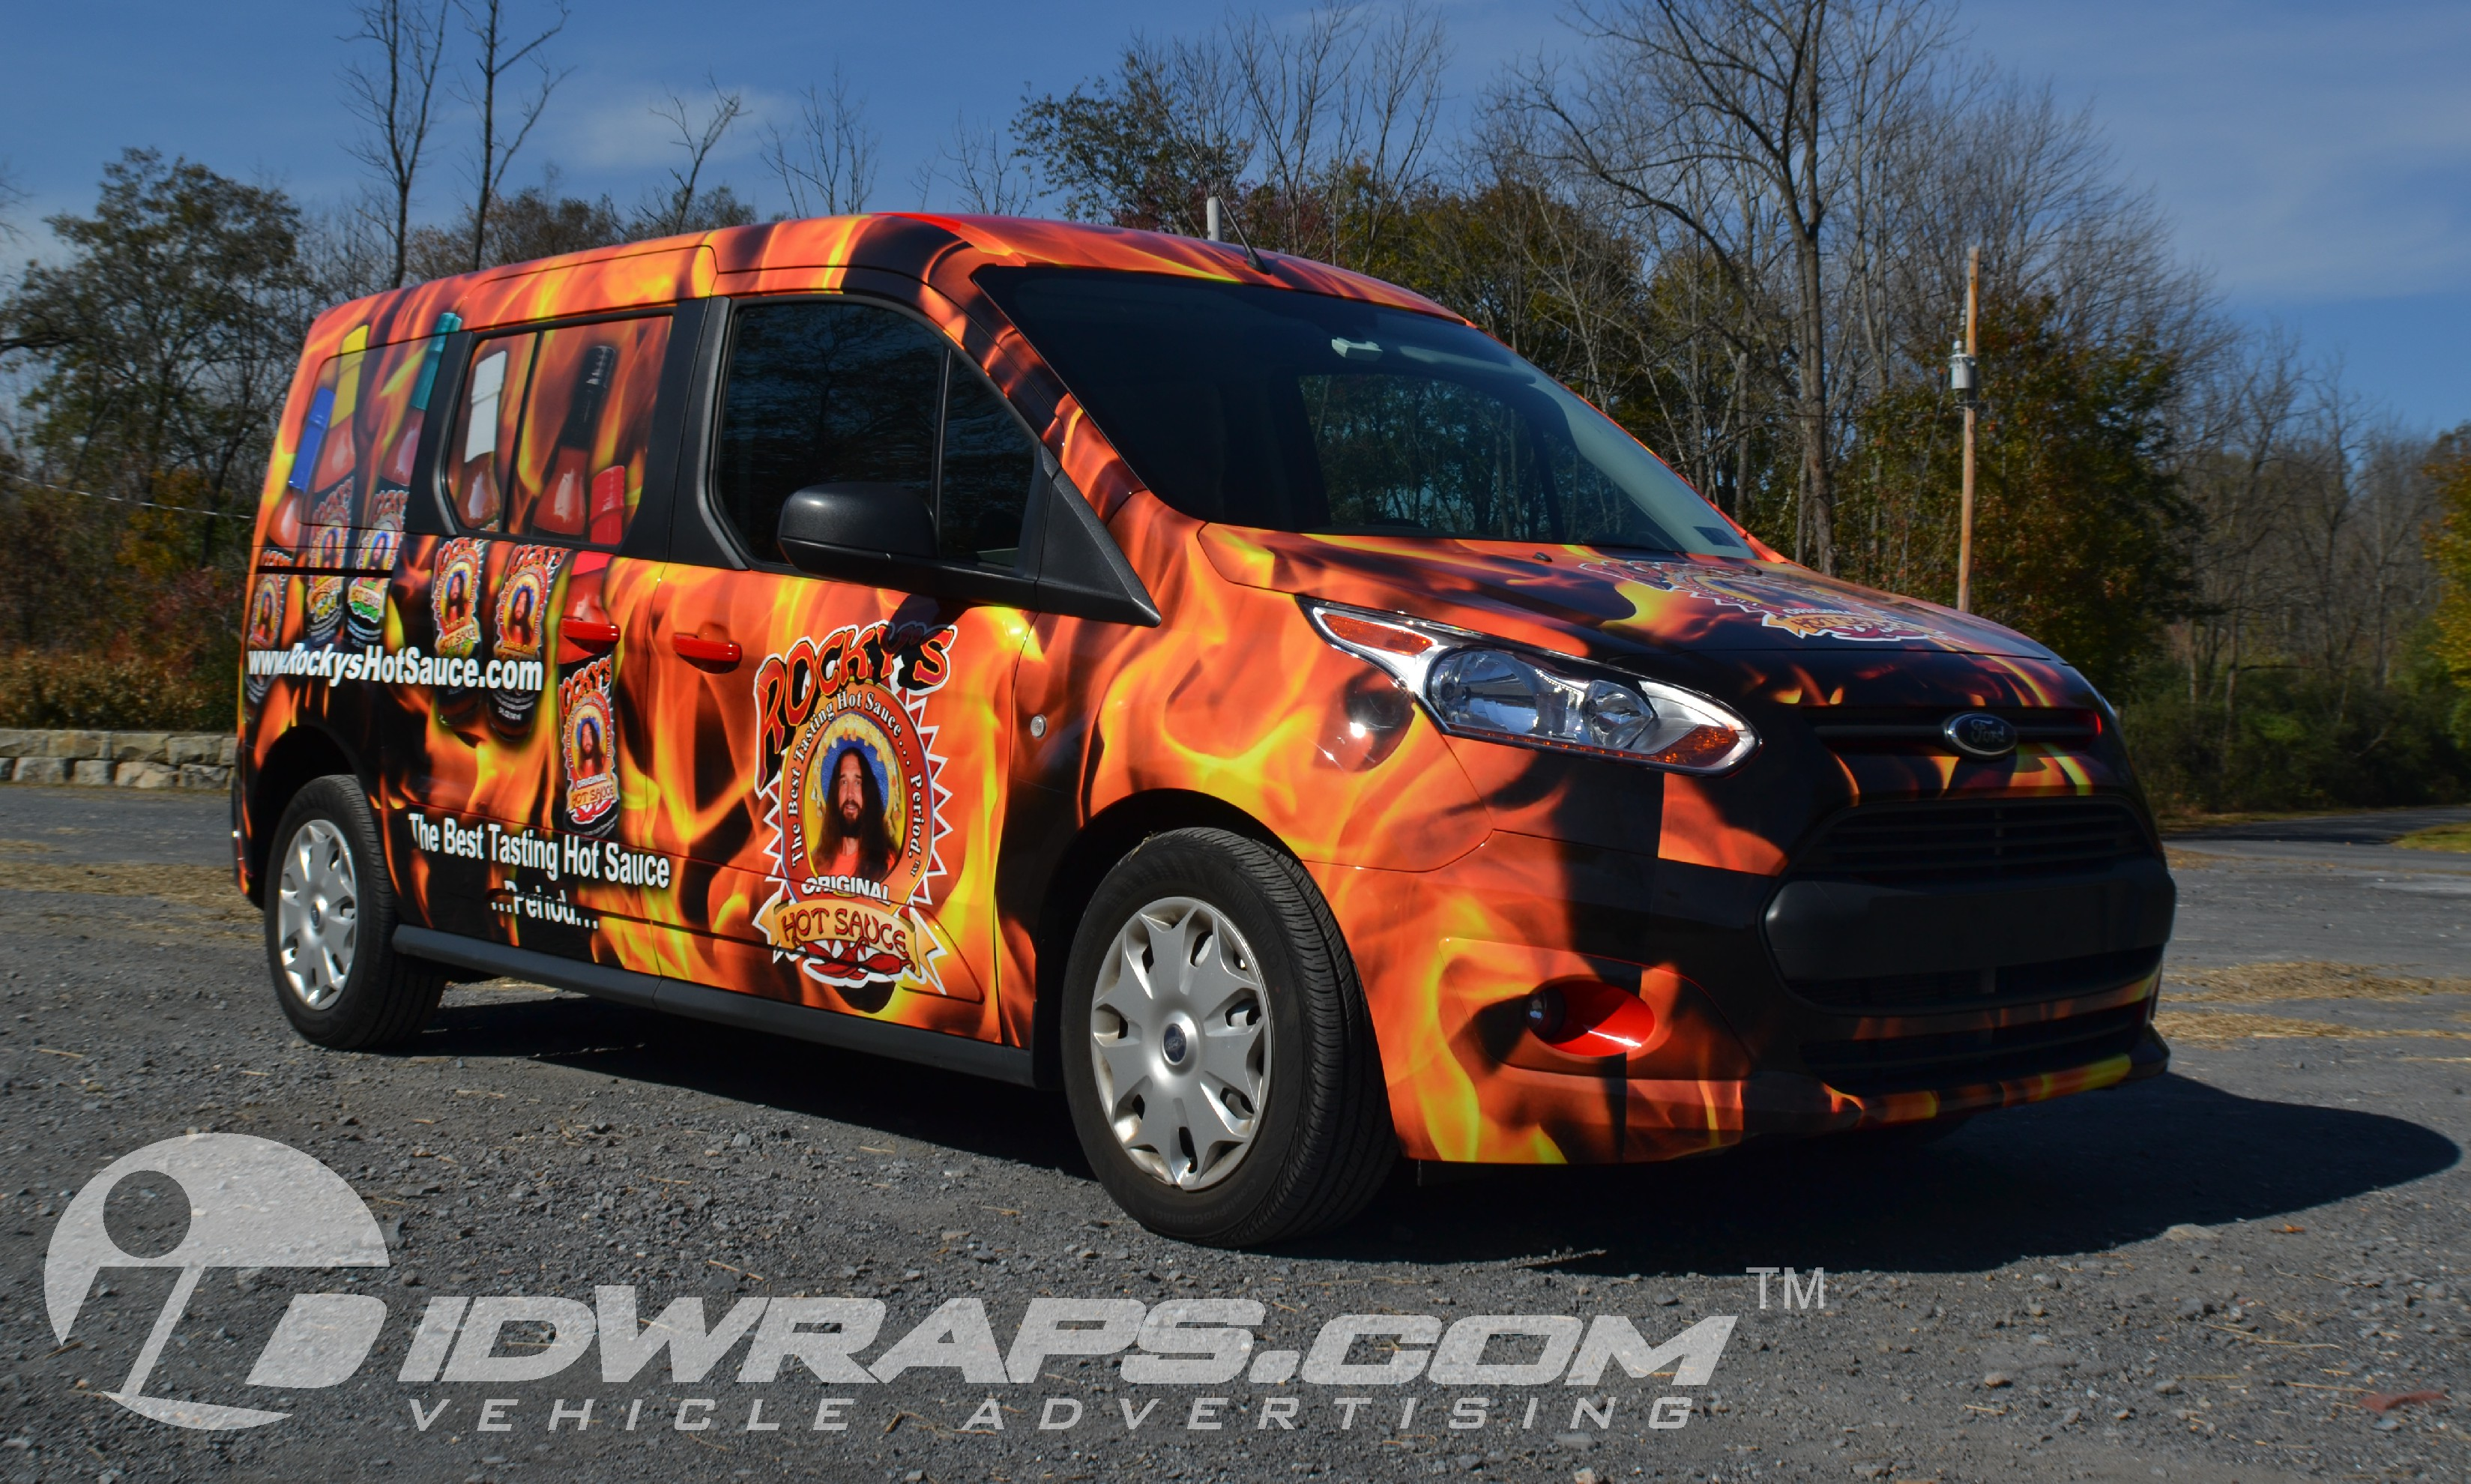 Rockys Hot Sauce 2014 Ford Transit Connect 3M Vinyl Graphic Wrap Full